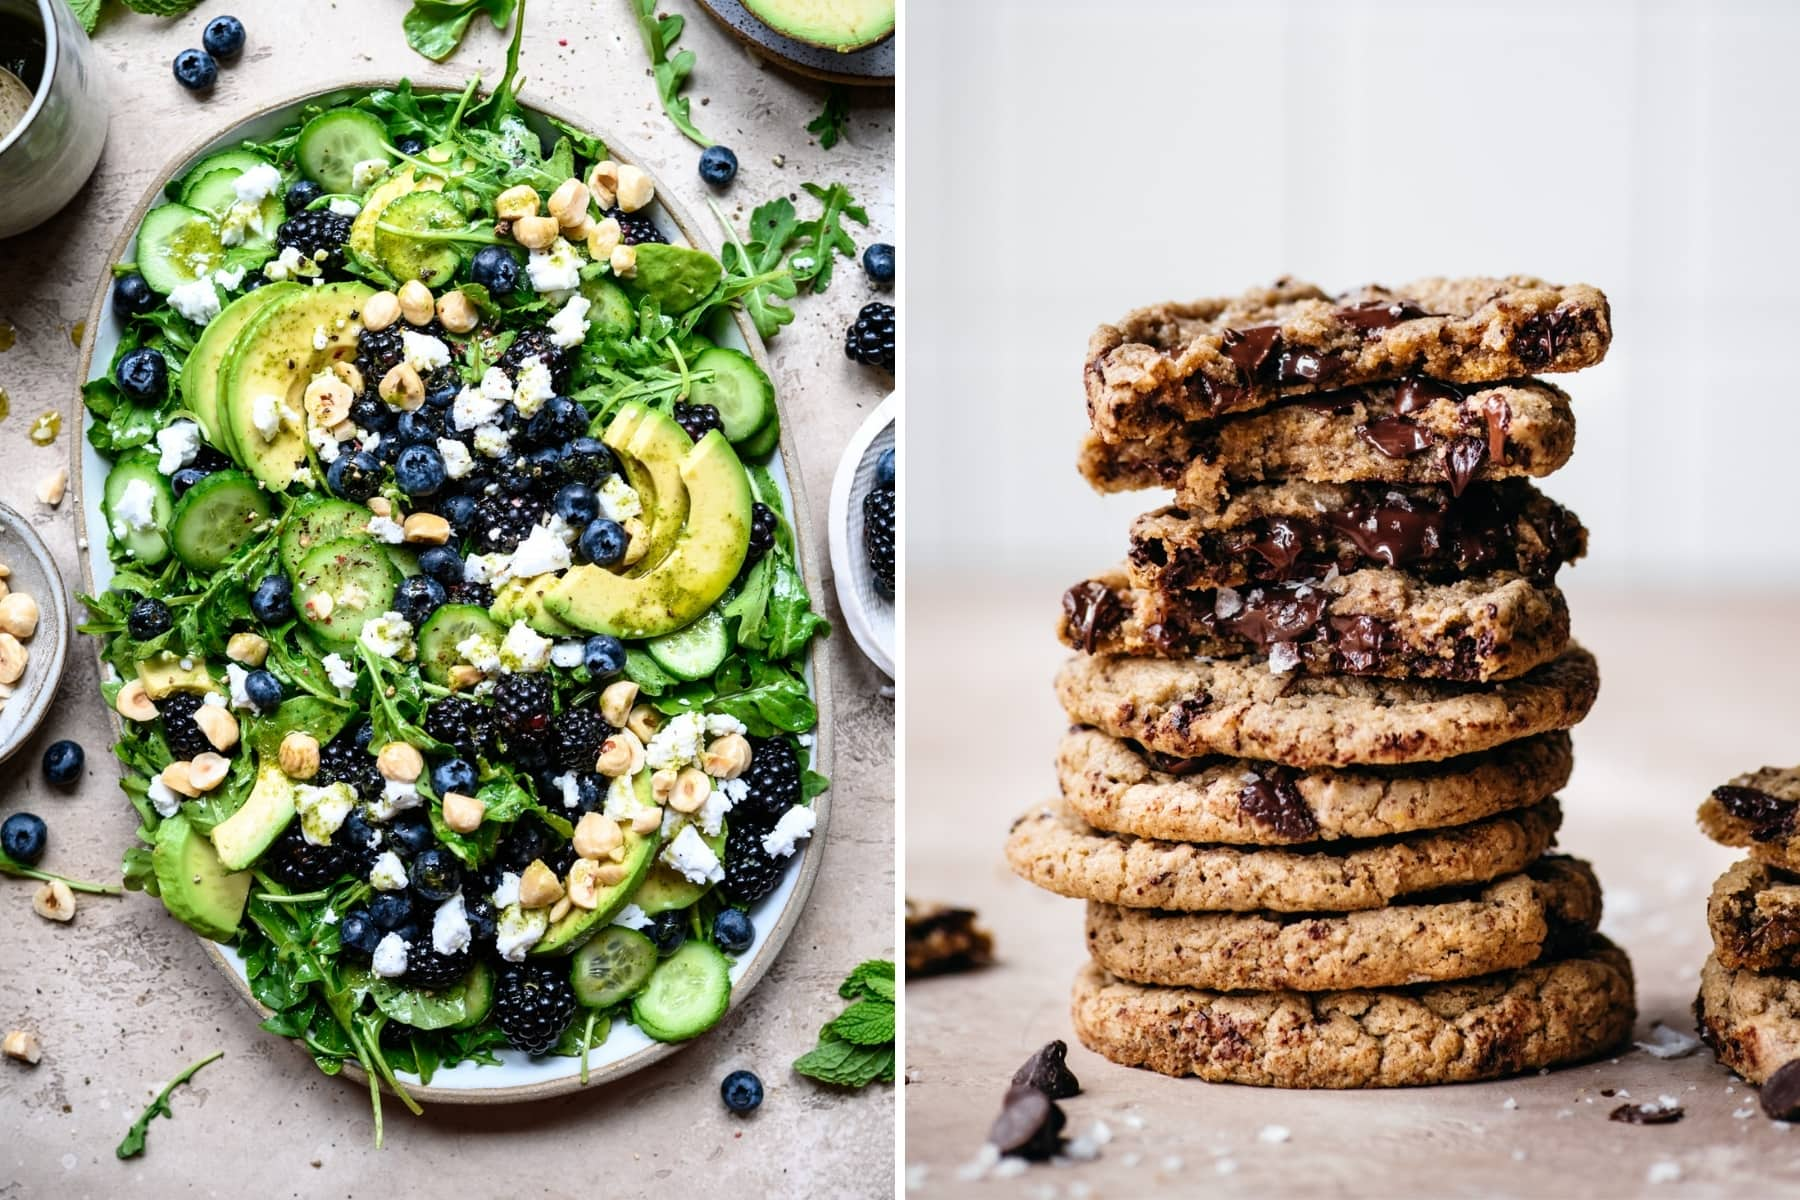 on the left: arugula avocado blackberry salad. On the right: a stack of chocolate chip cookies.